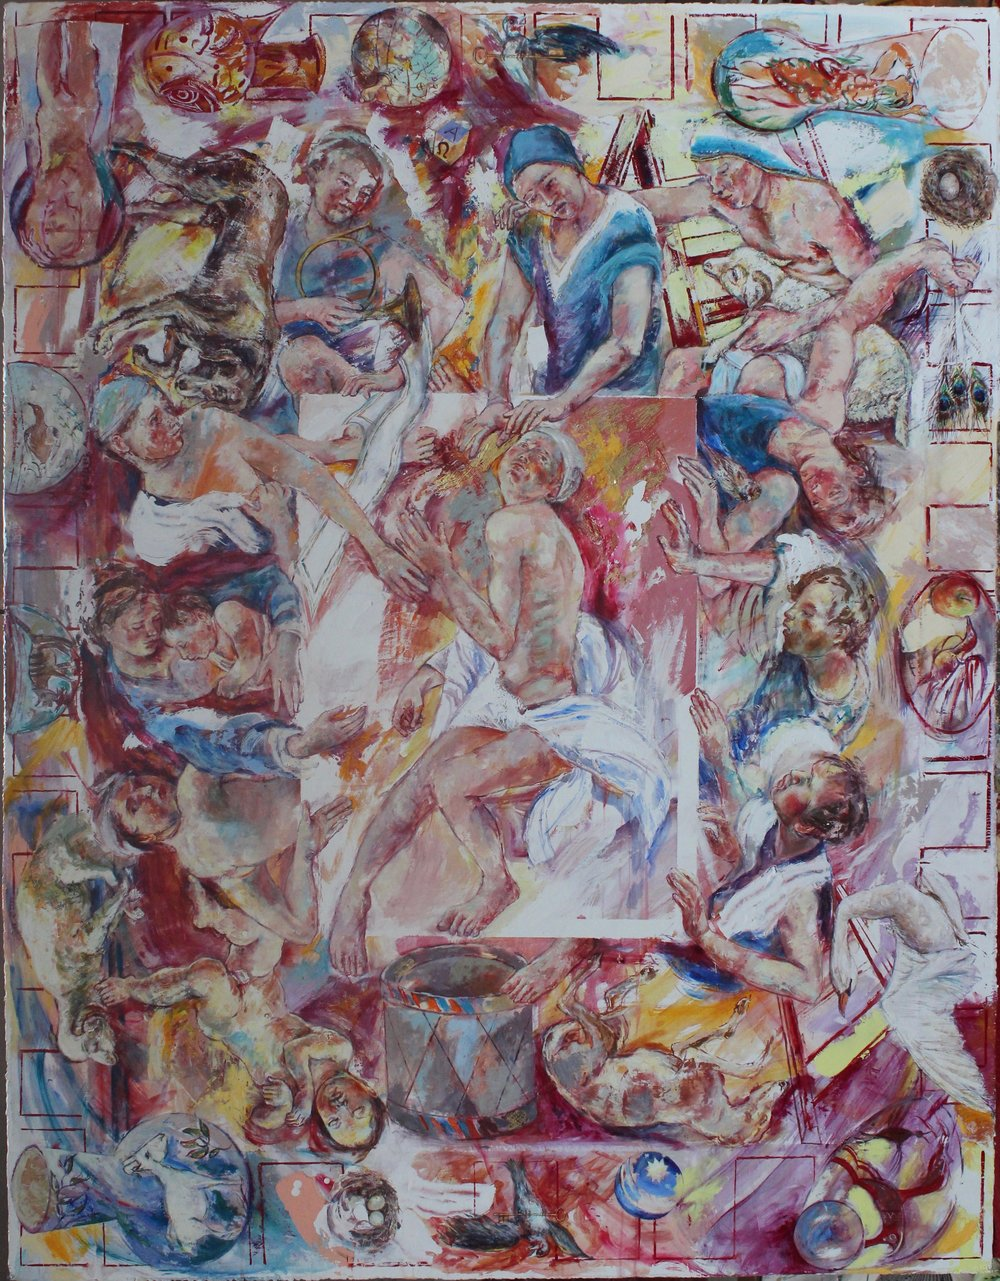 Kate Rose, The Good Friends, Acrylic Gesso and Gold Leaf on panel, 158 cm X 122.5cm X 1cm